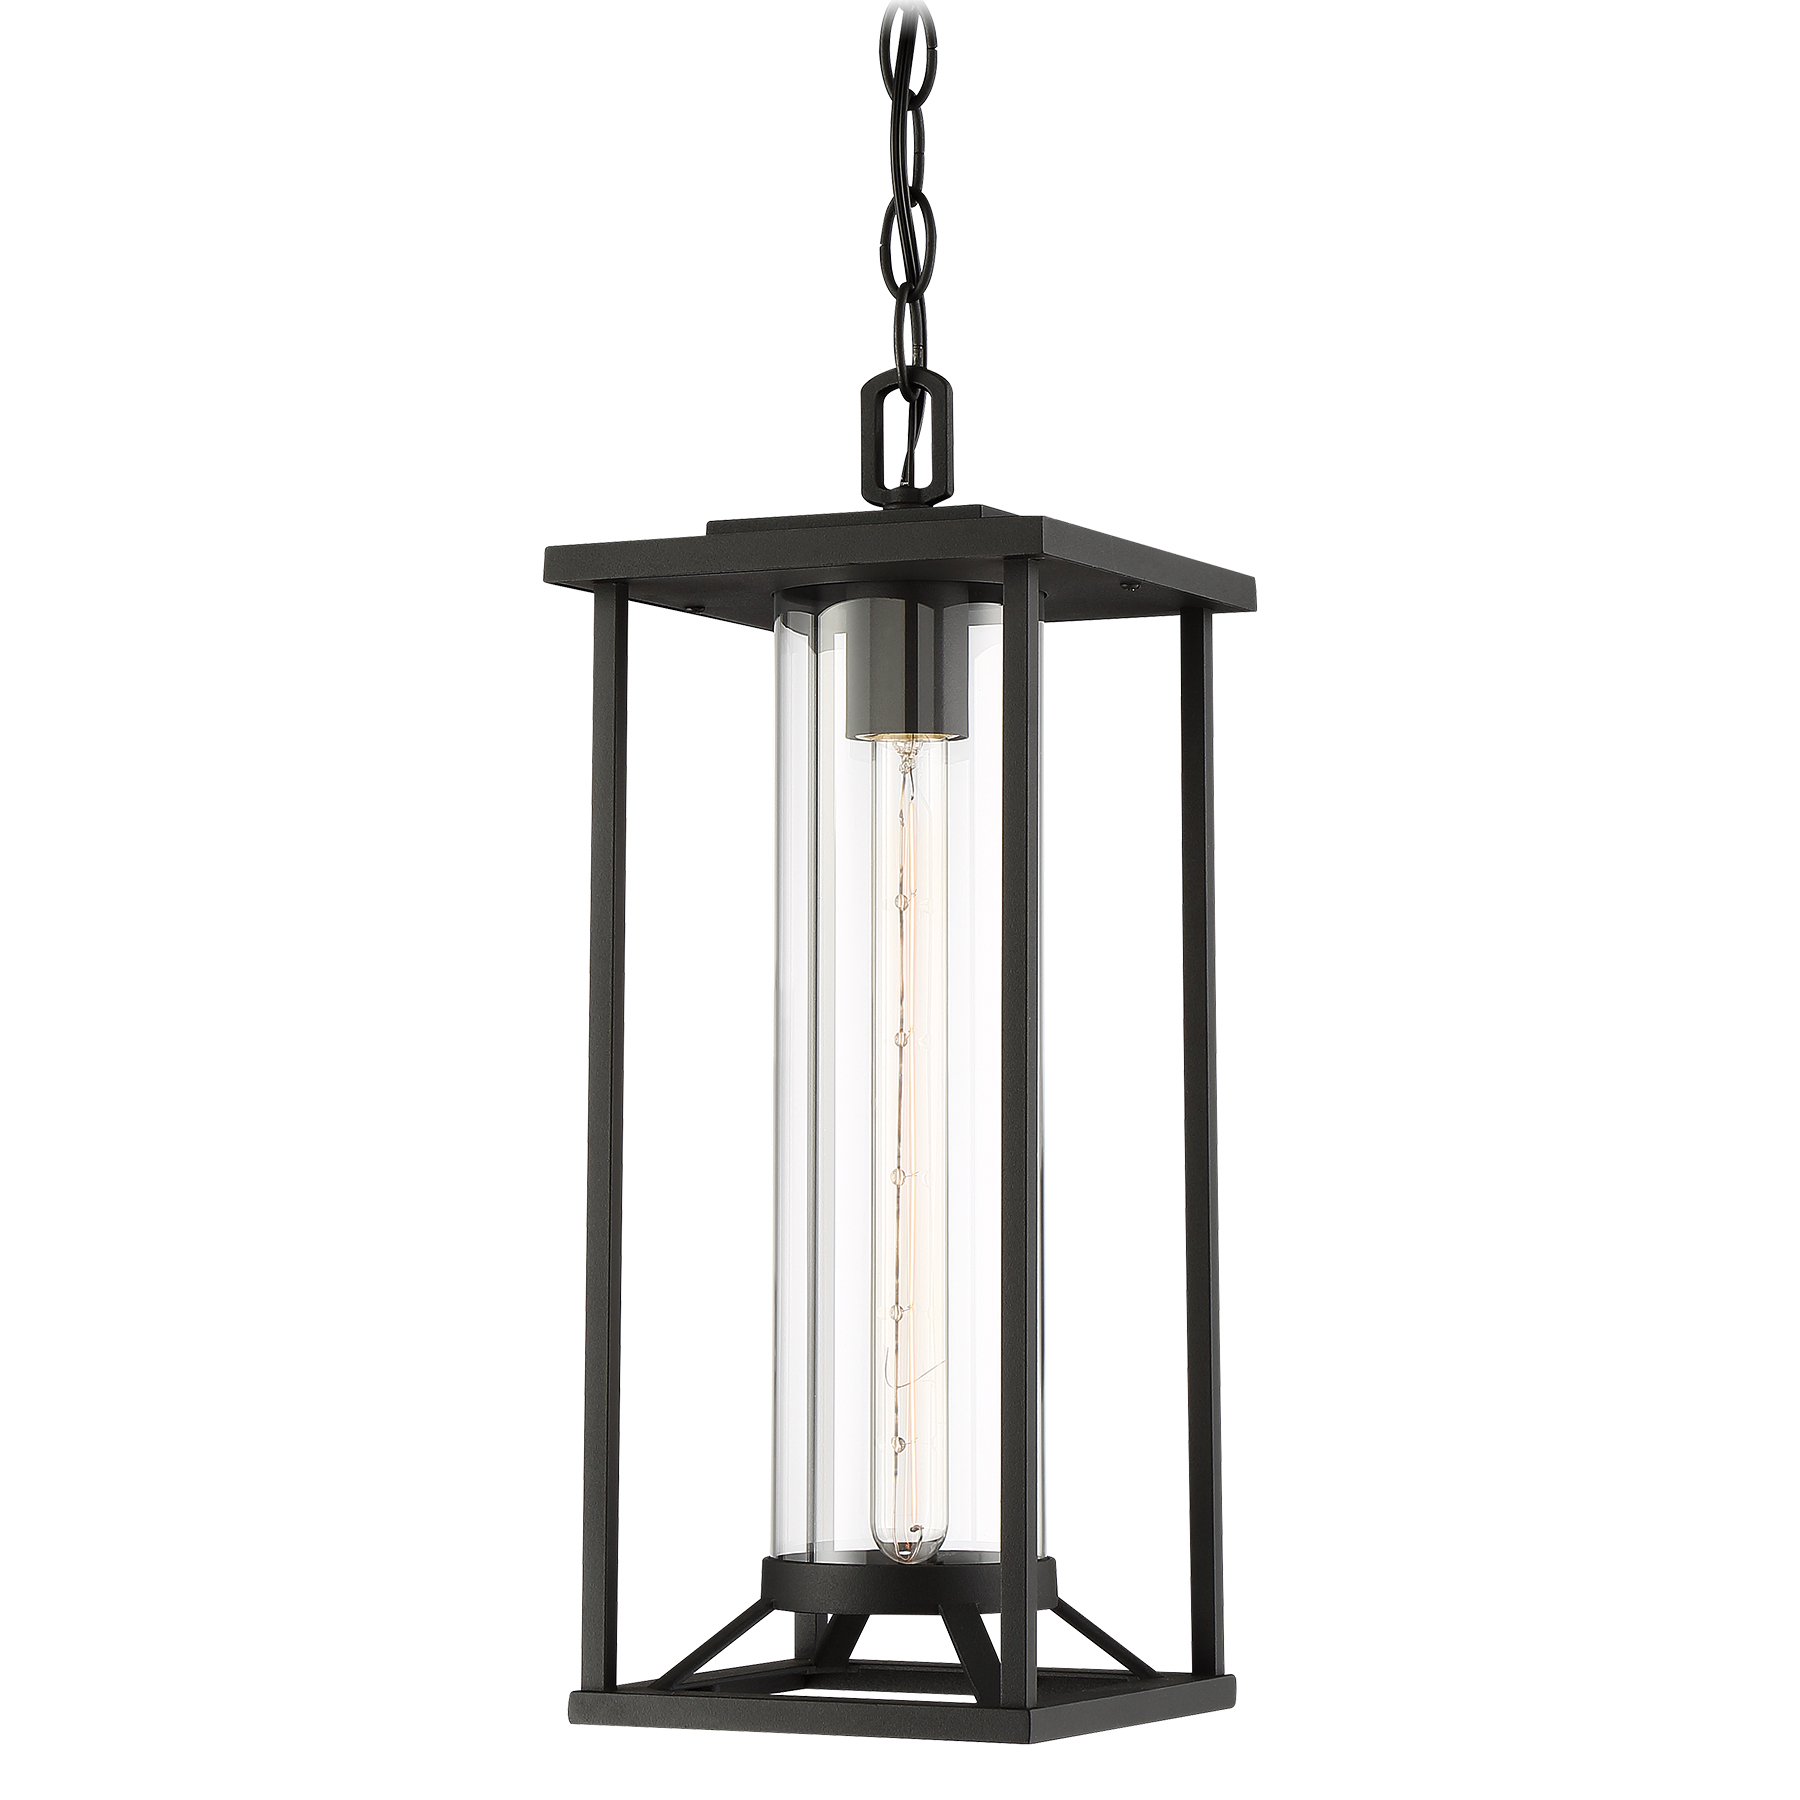 Minka group brands the great outdoorsreg 72474 66 trescott 1 light chain hung aloadofball Images